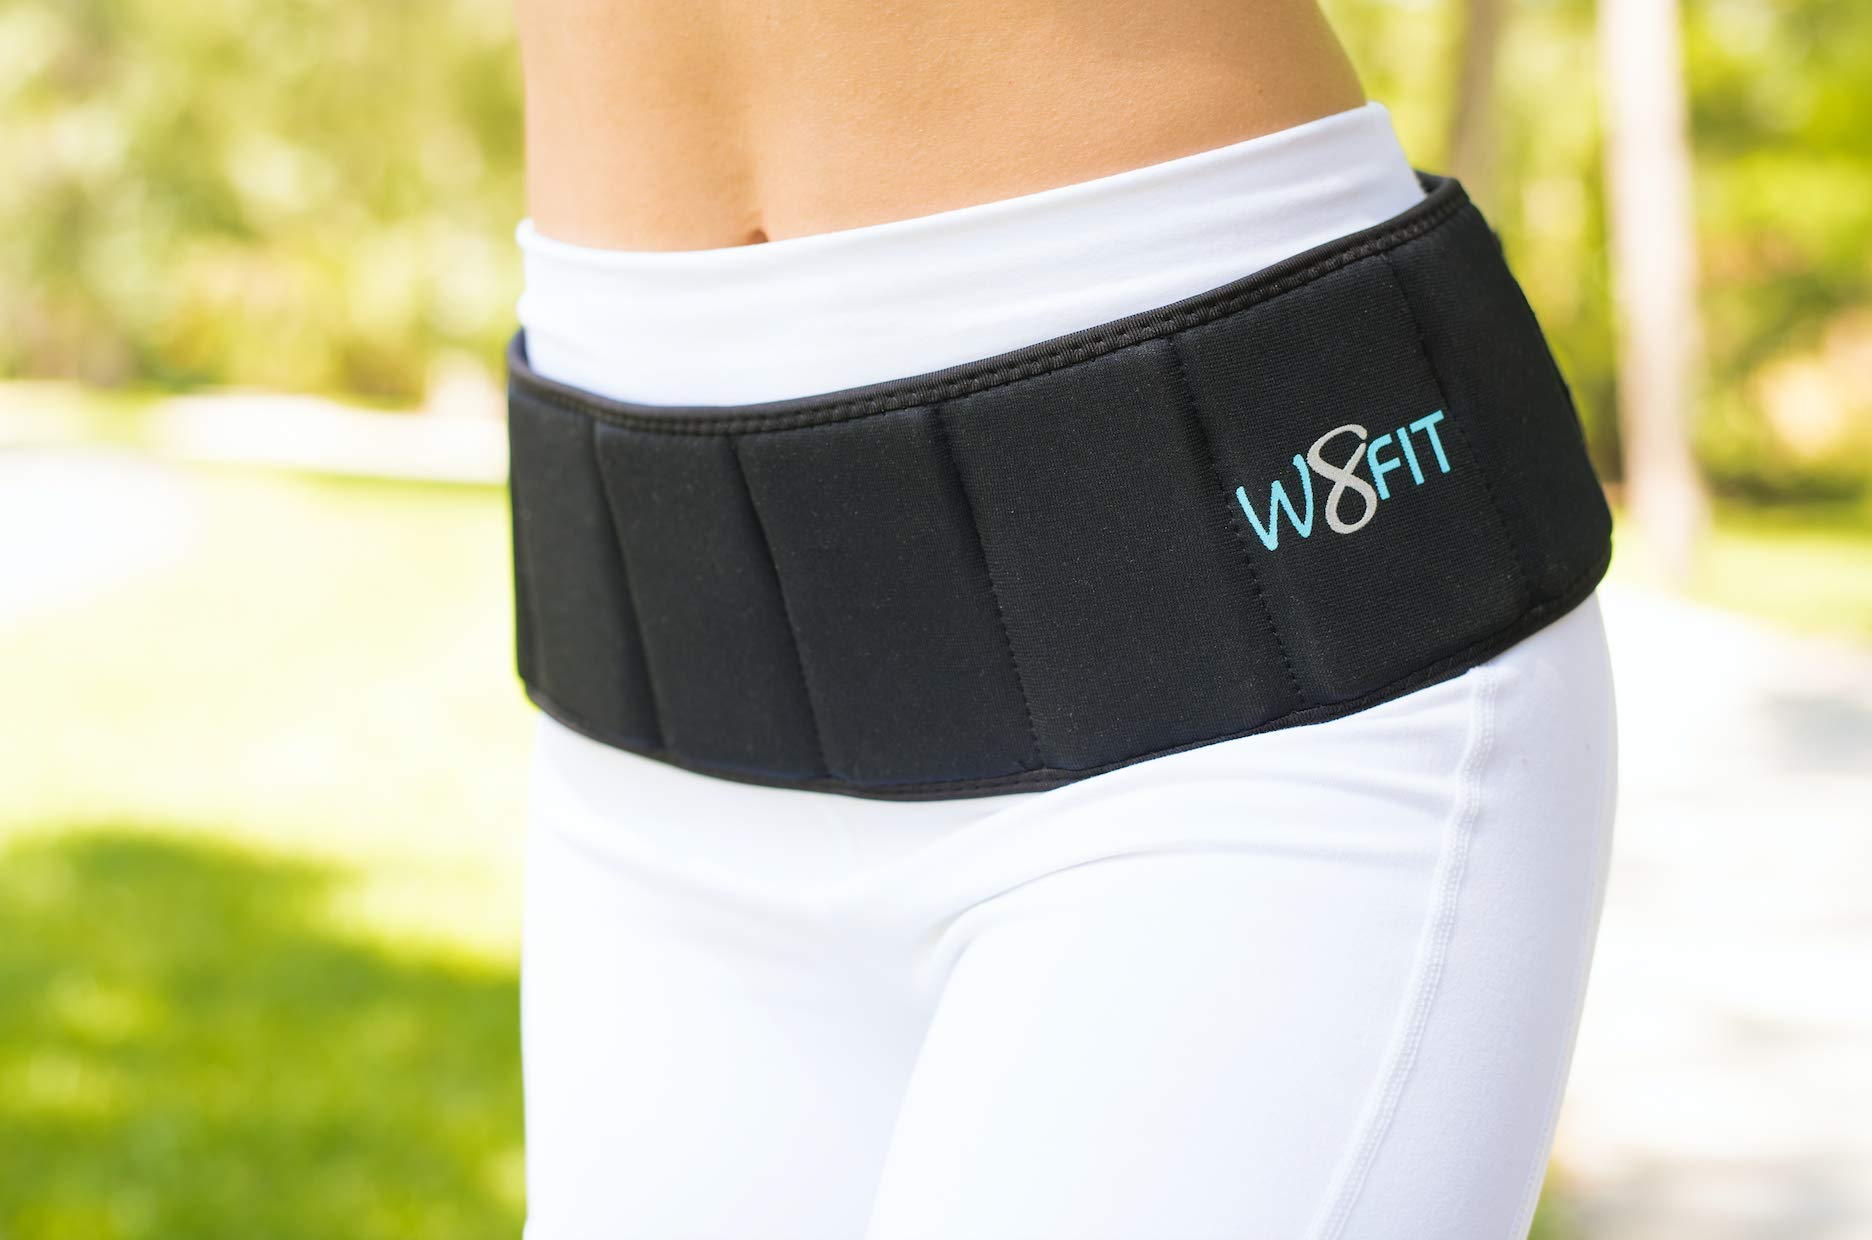 W8FIT Adjustable Weighted Belt 4 lbs (Small/Medium)